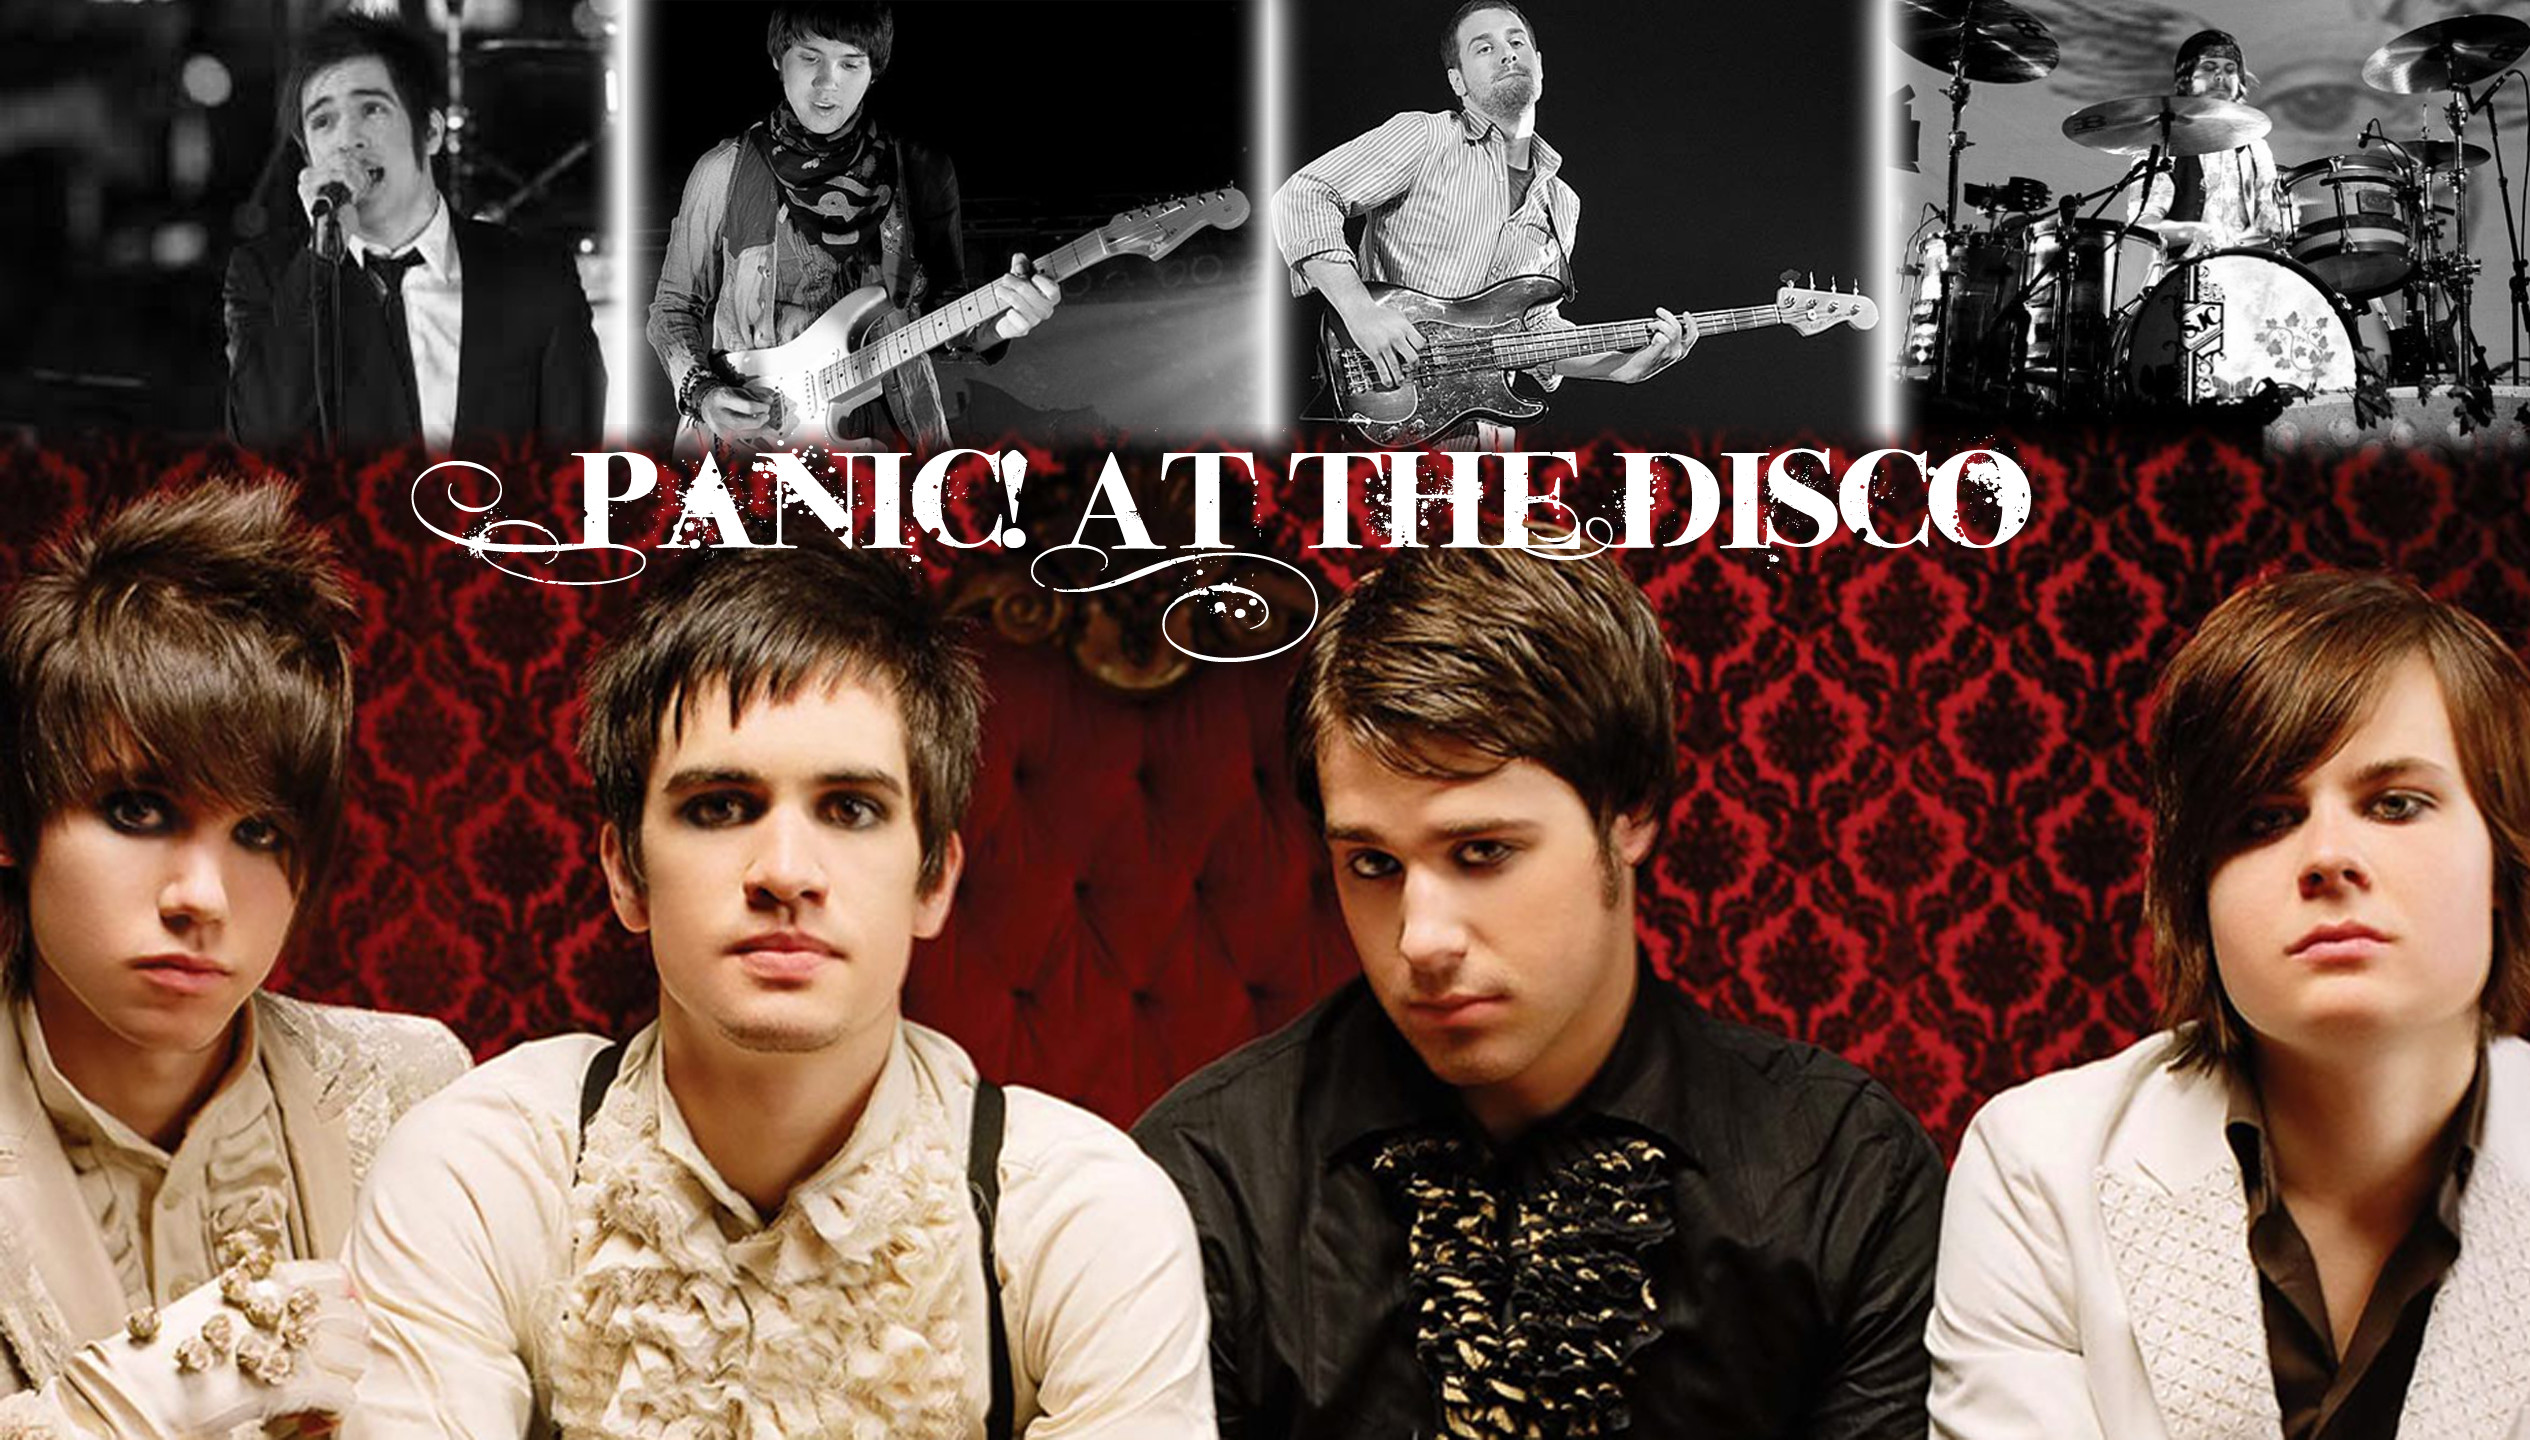 … Panic At The Disco wallpaper by clicheclad